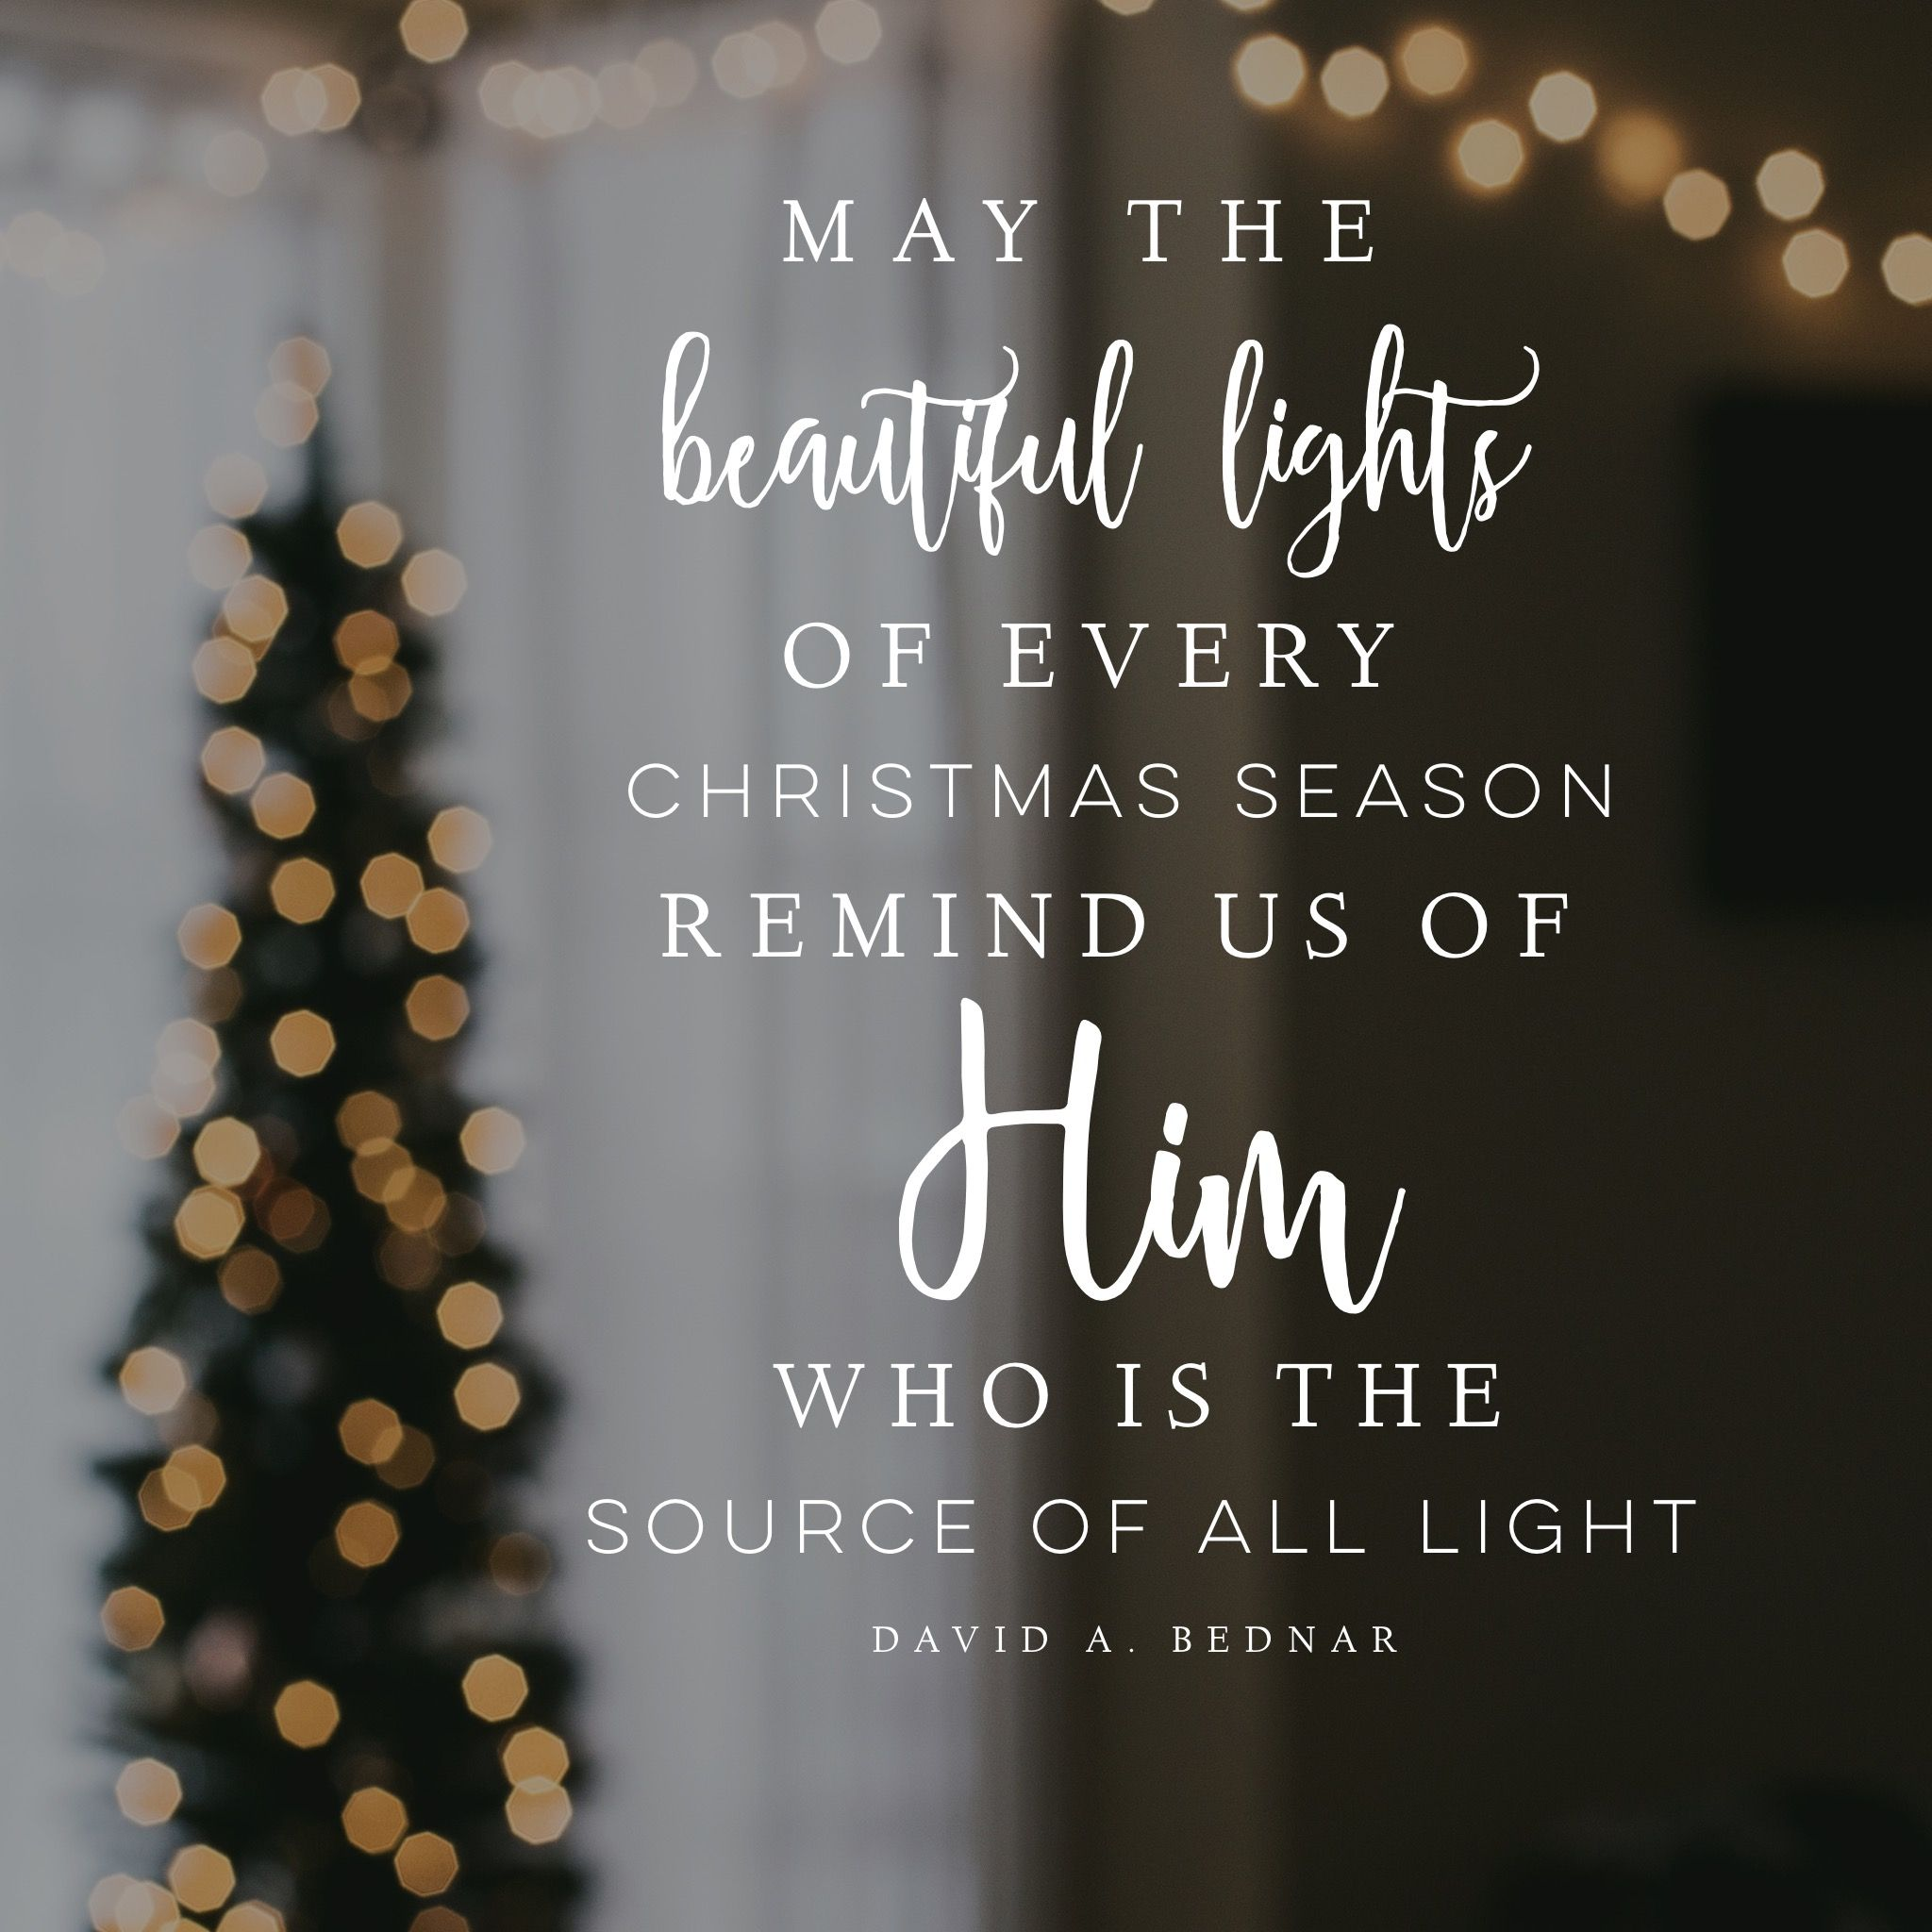 May The Beautiful Lights Of Every Christmas Season Remind Us Of Him